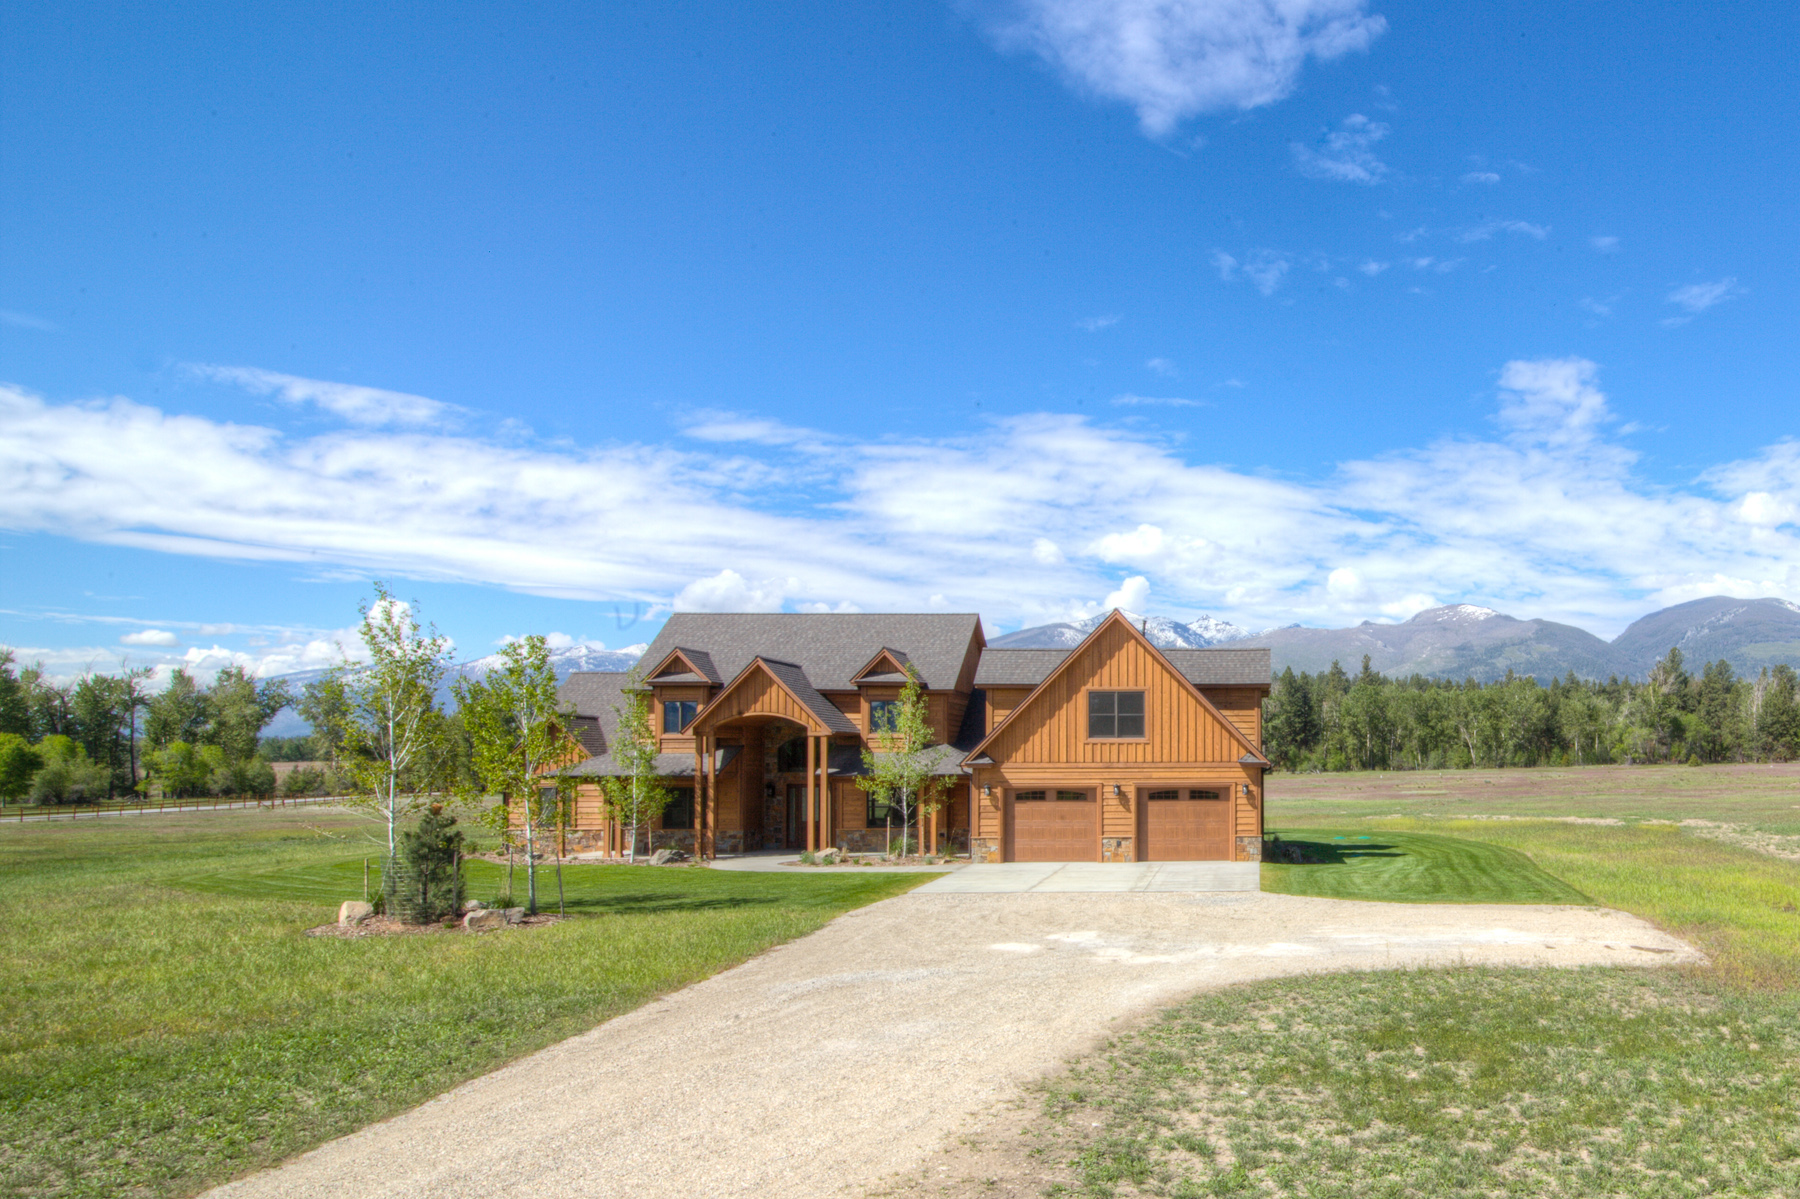 Single Family Home for Sale at Burr Creek Ranch 326 Hillside Ranch Road Victor, Montana 59875 United States